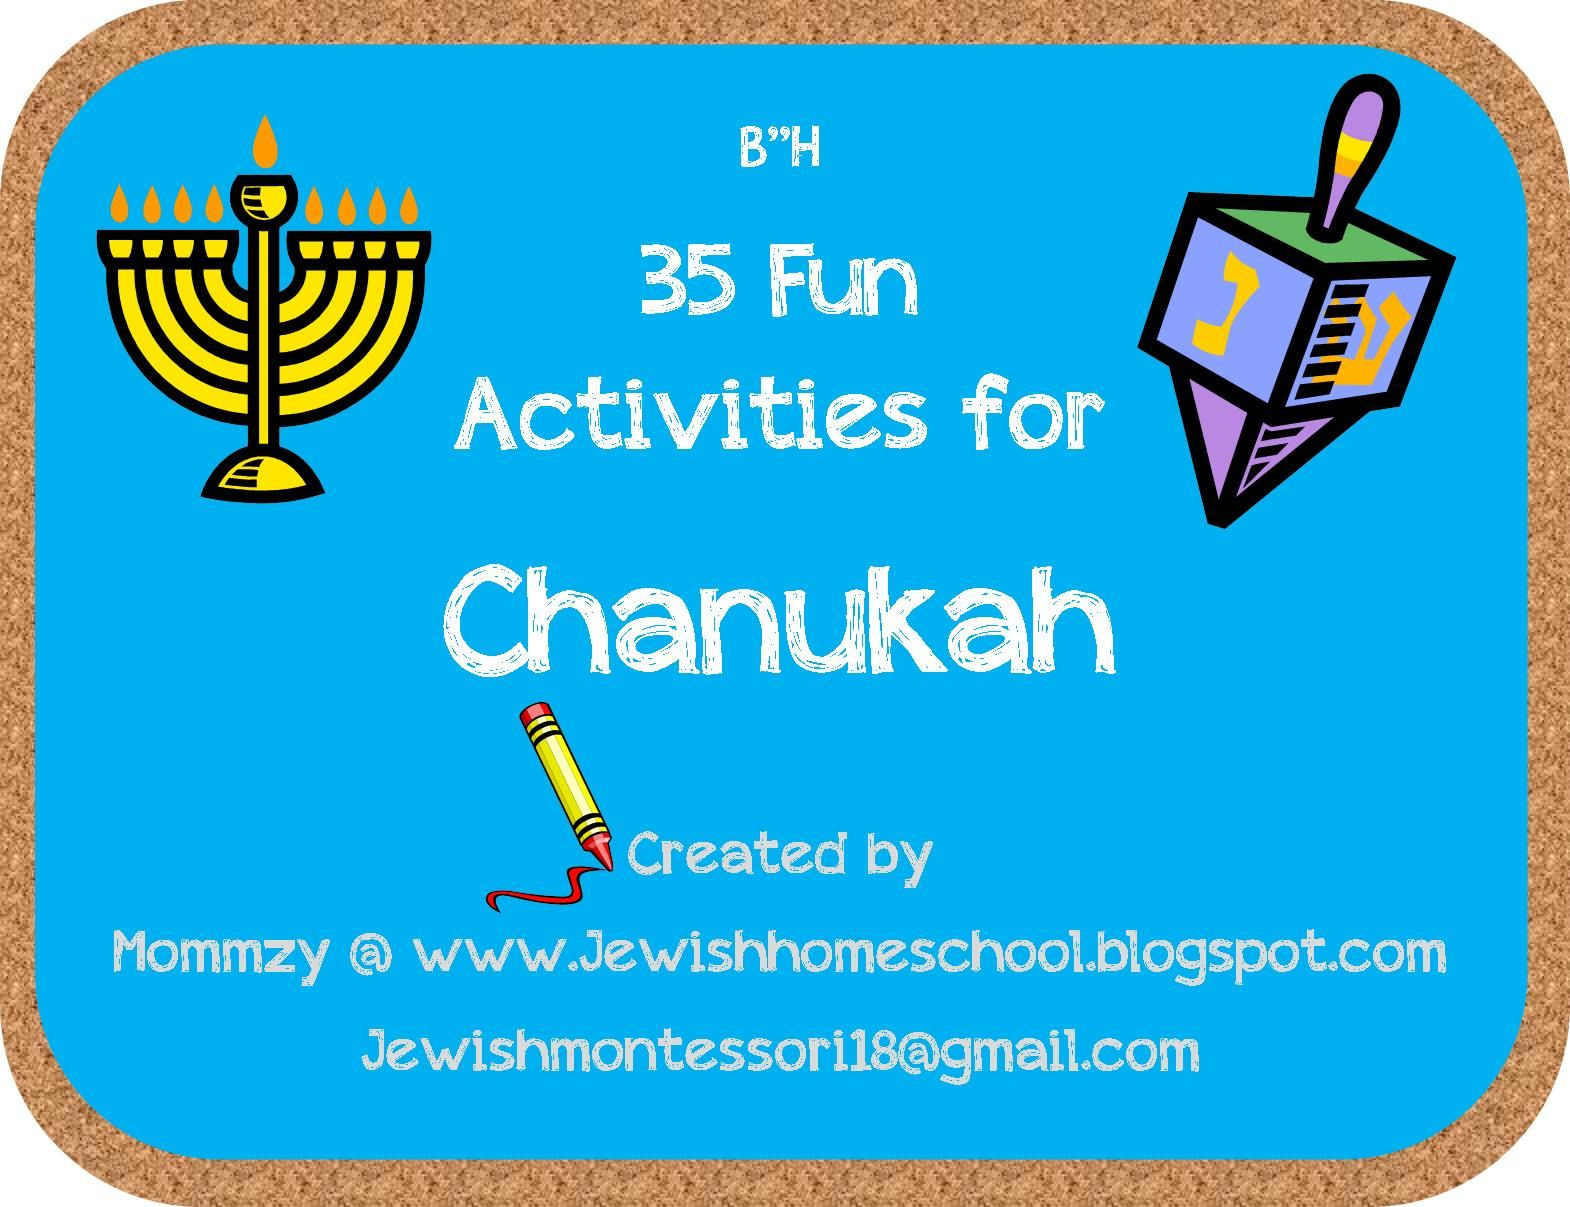 35 Fun Activities For Chanukah From Our Jewish Homeschool